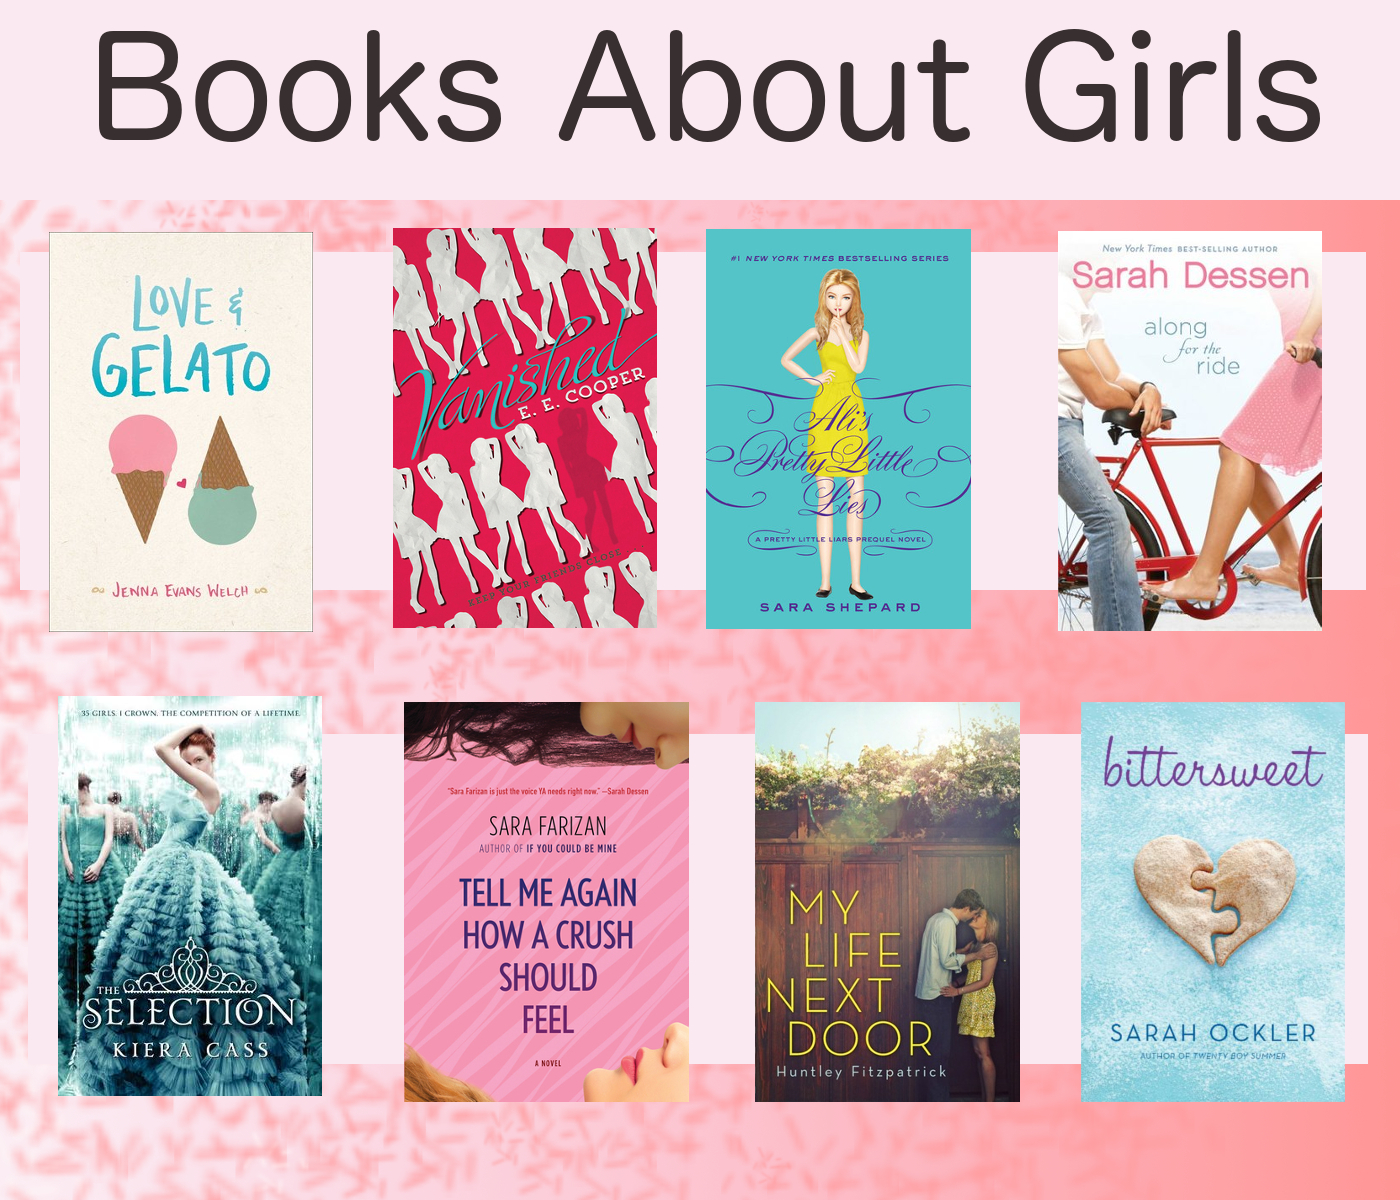 eight books on a pink background, titles listed later in this post